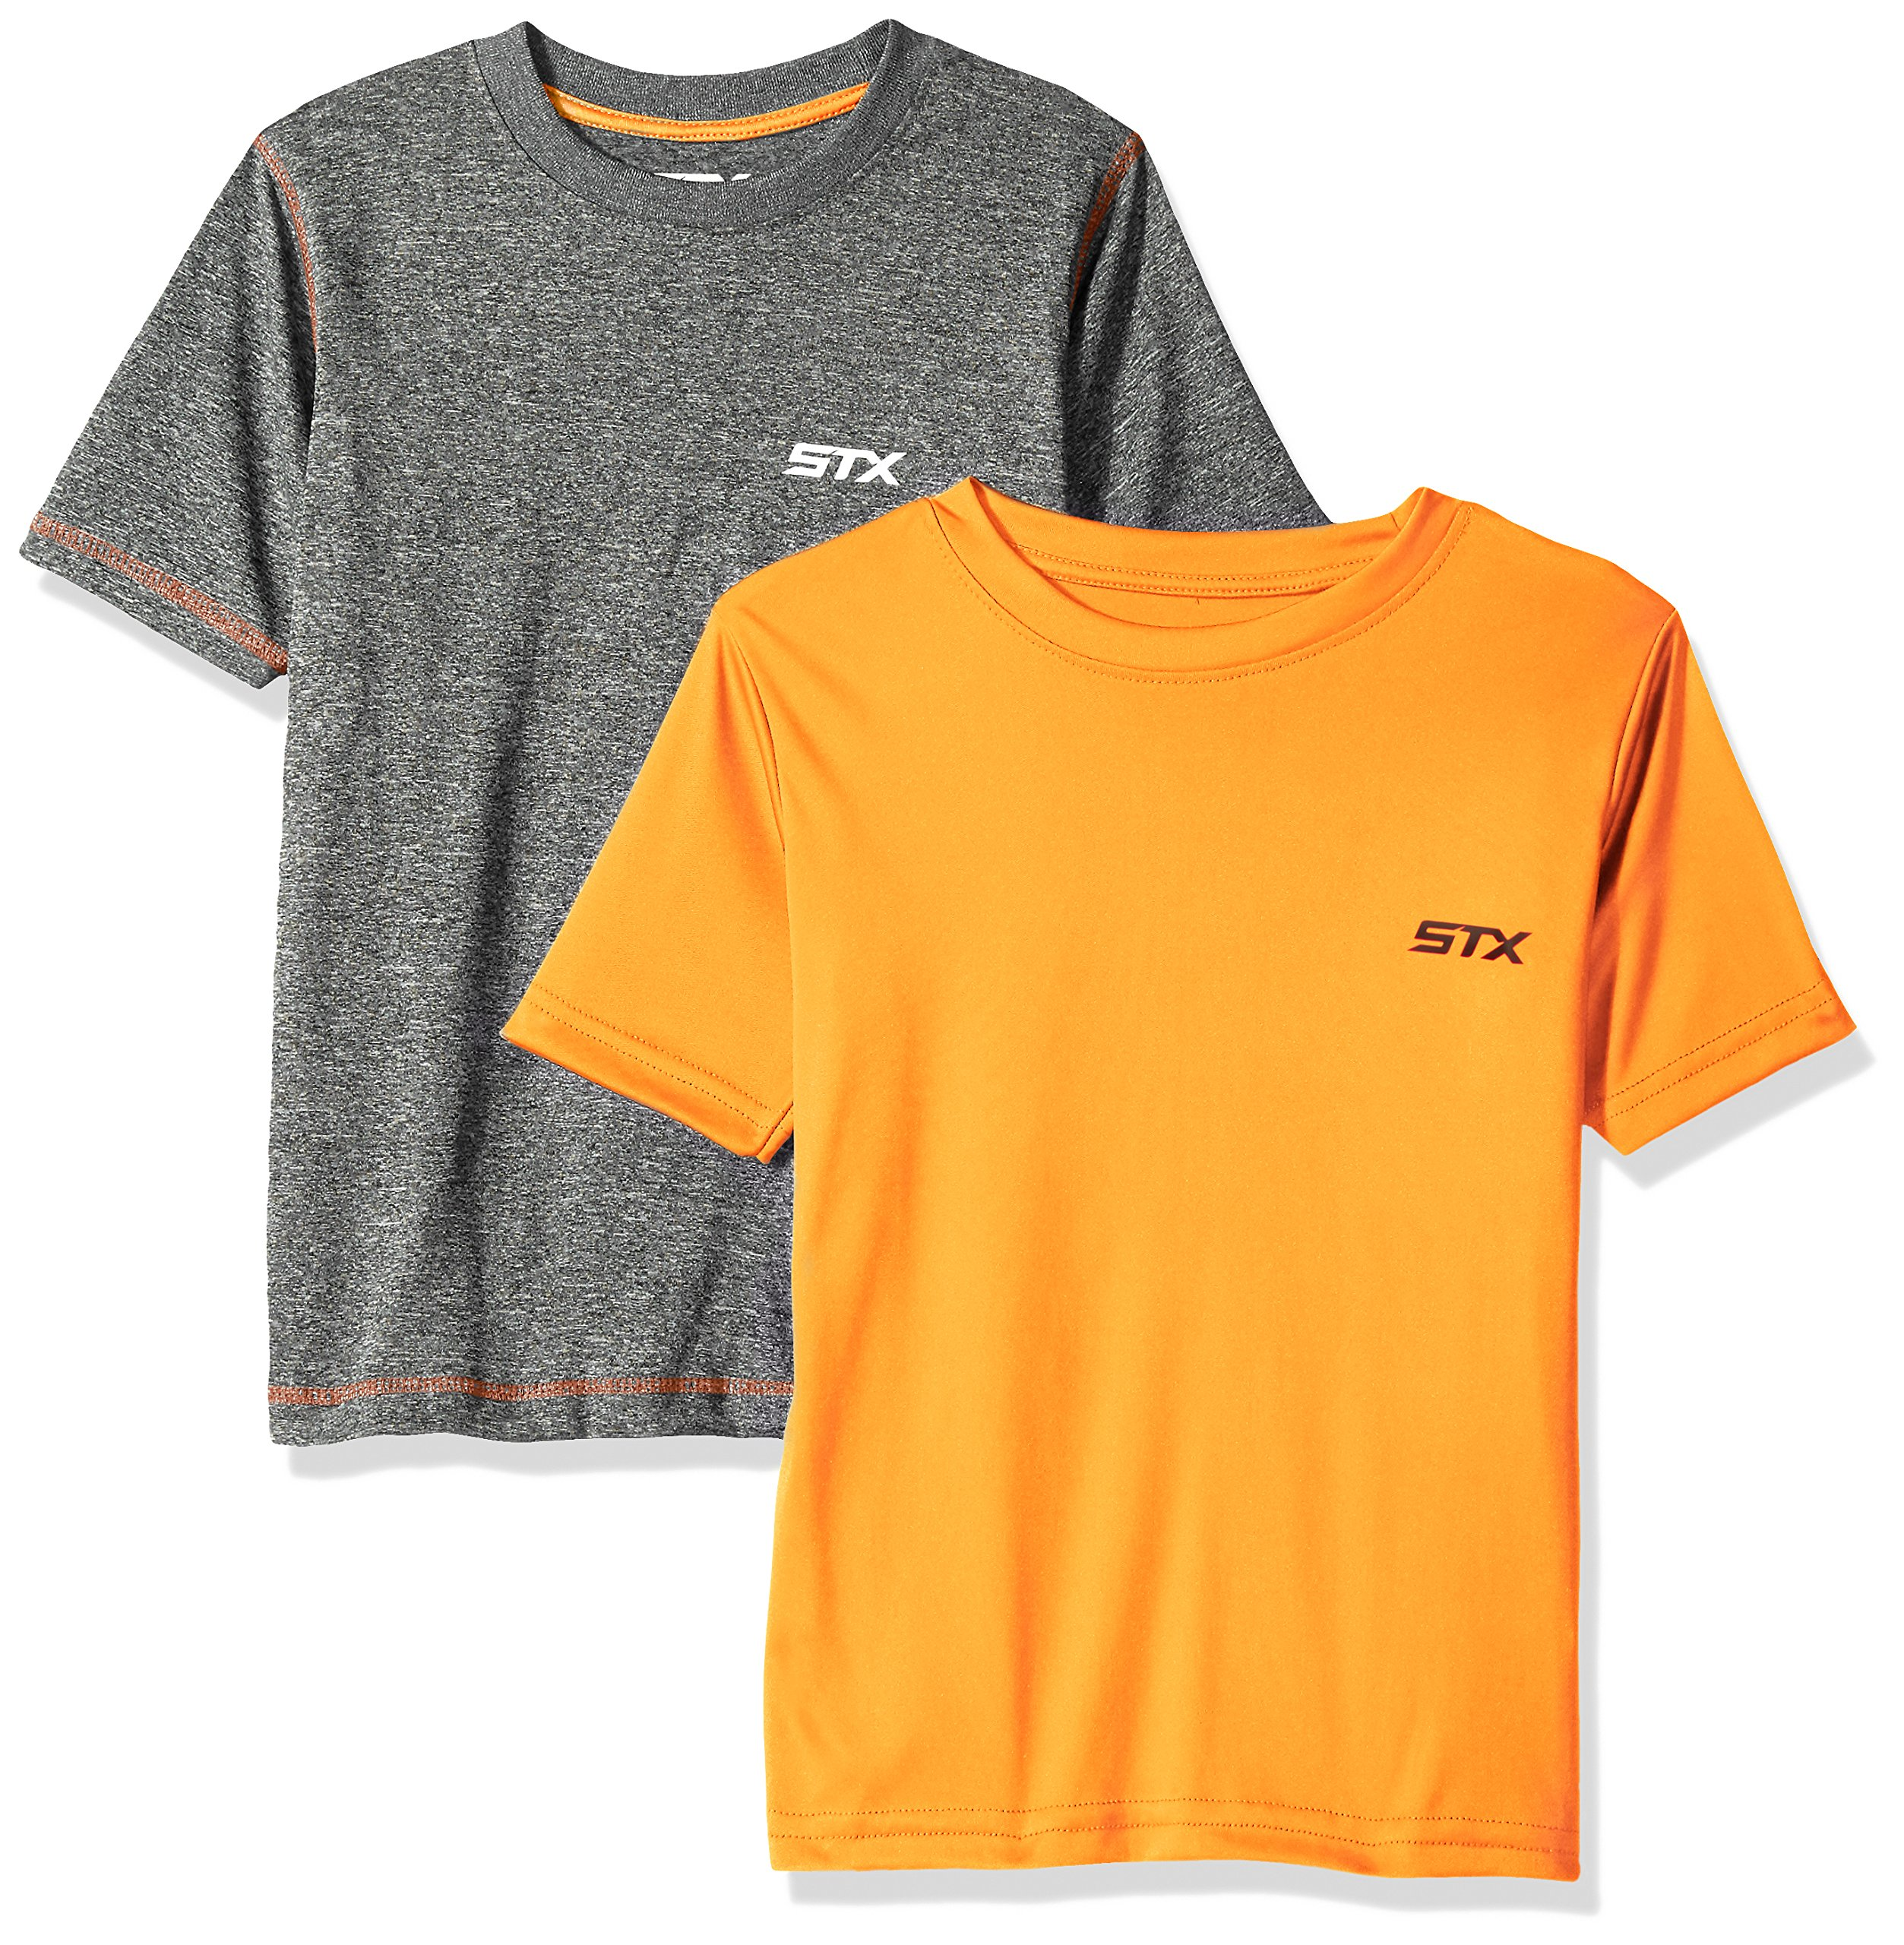 STX Big Boys Active T-Shirt and Packs, 2 Pack -Orange/Gray -TX61, 10/12